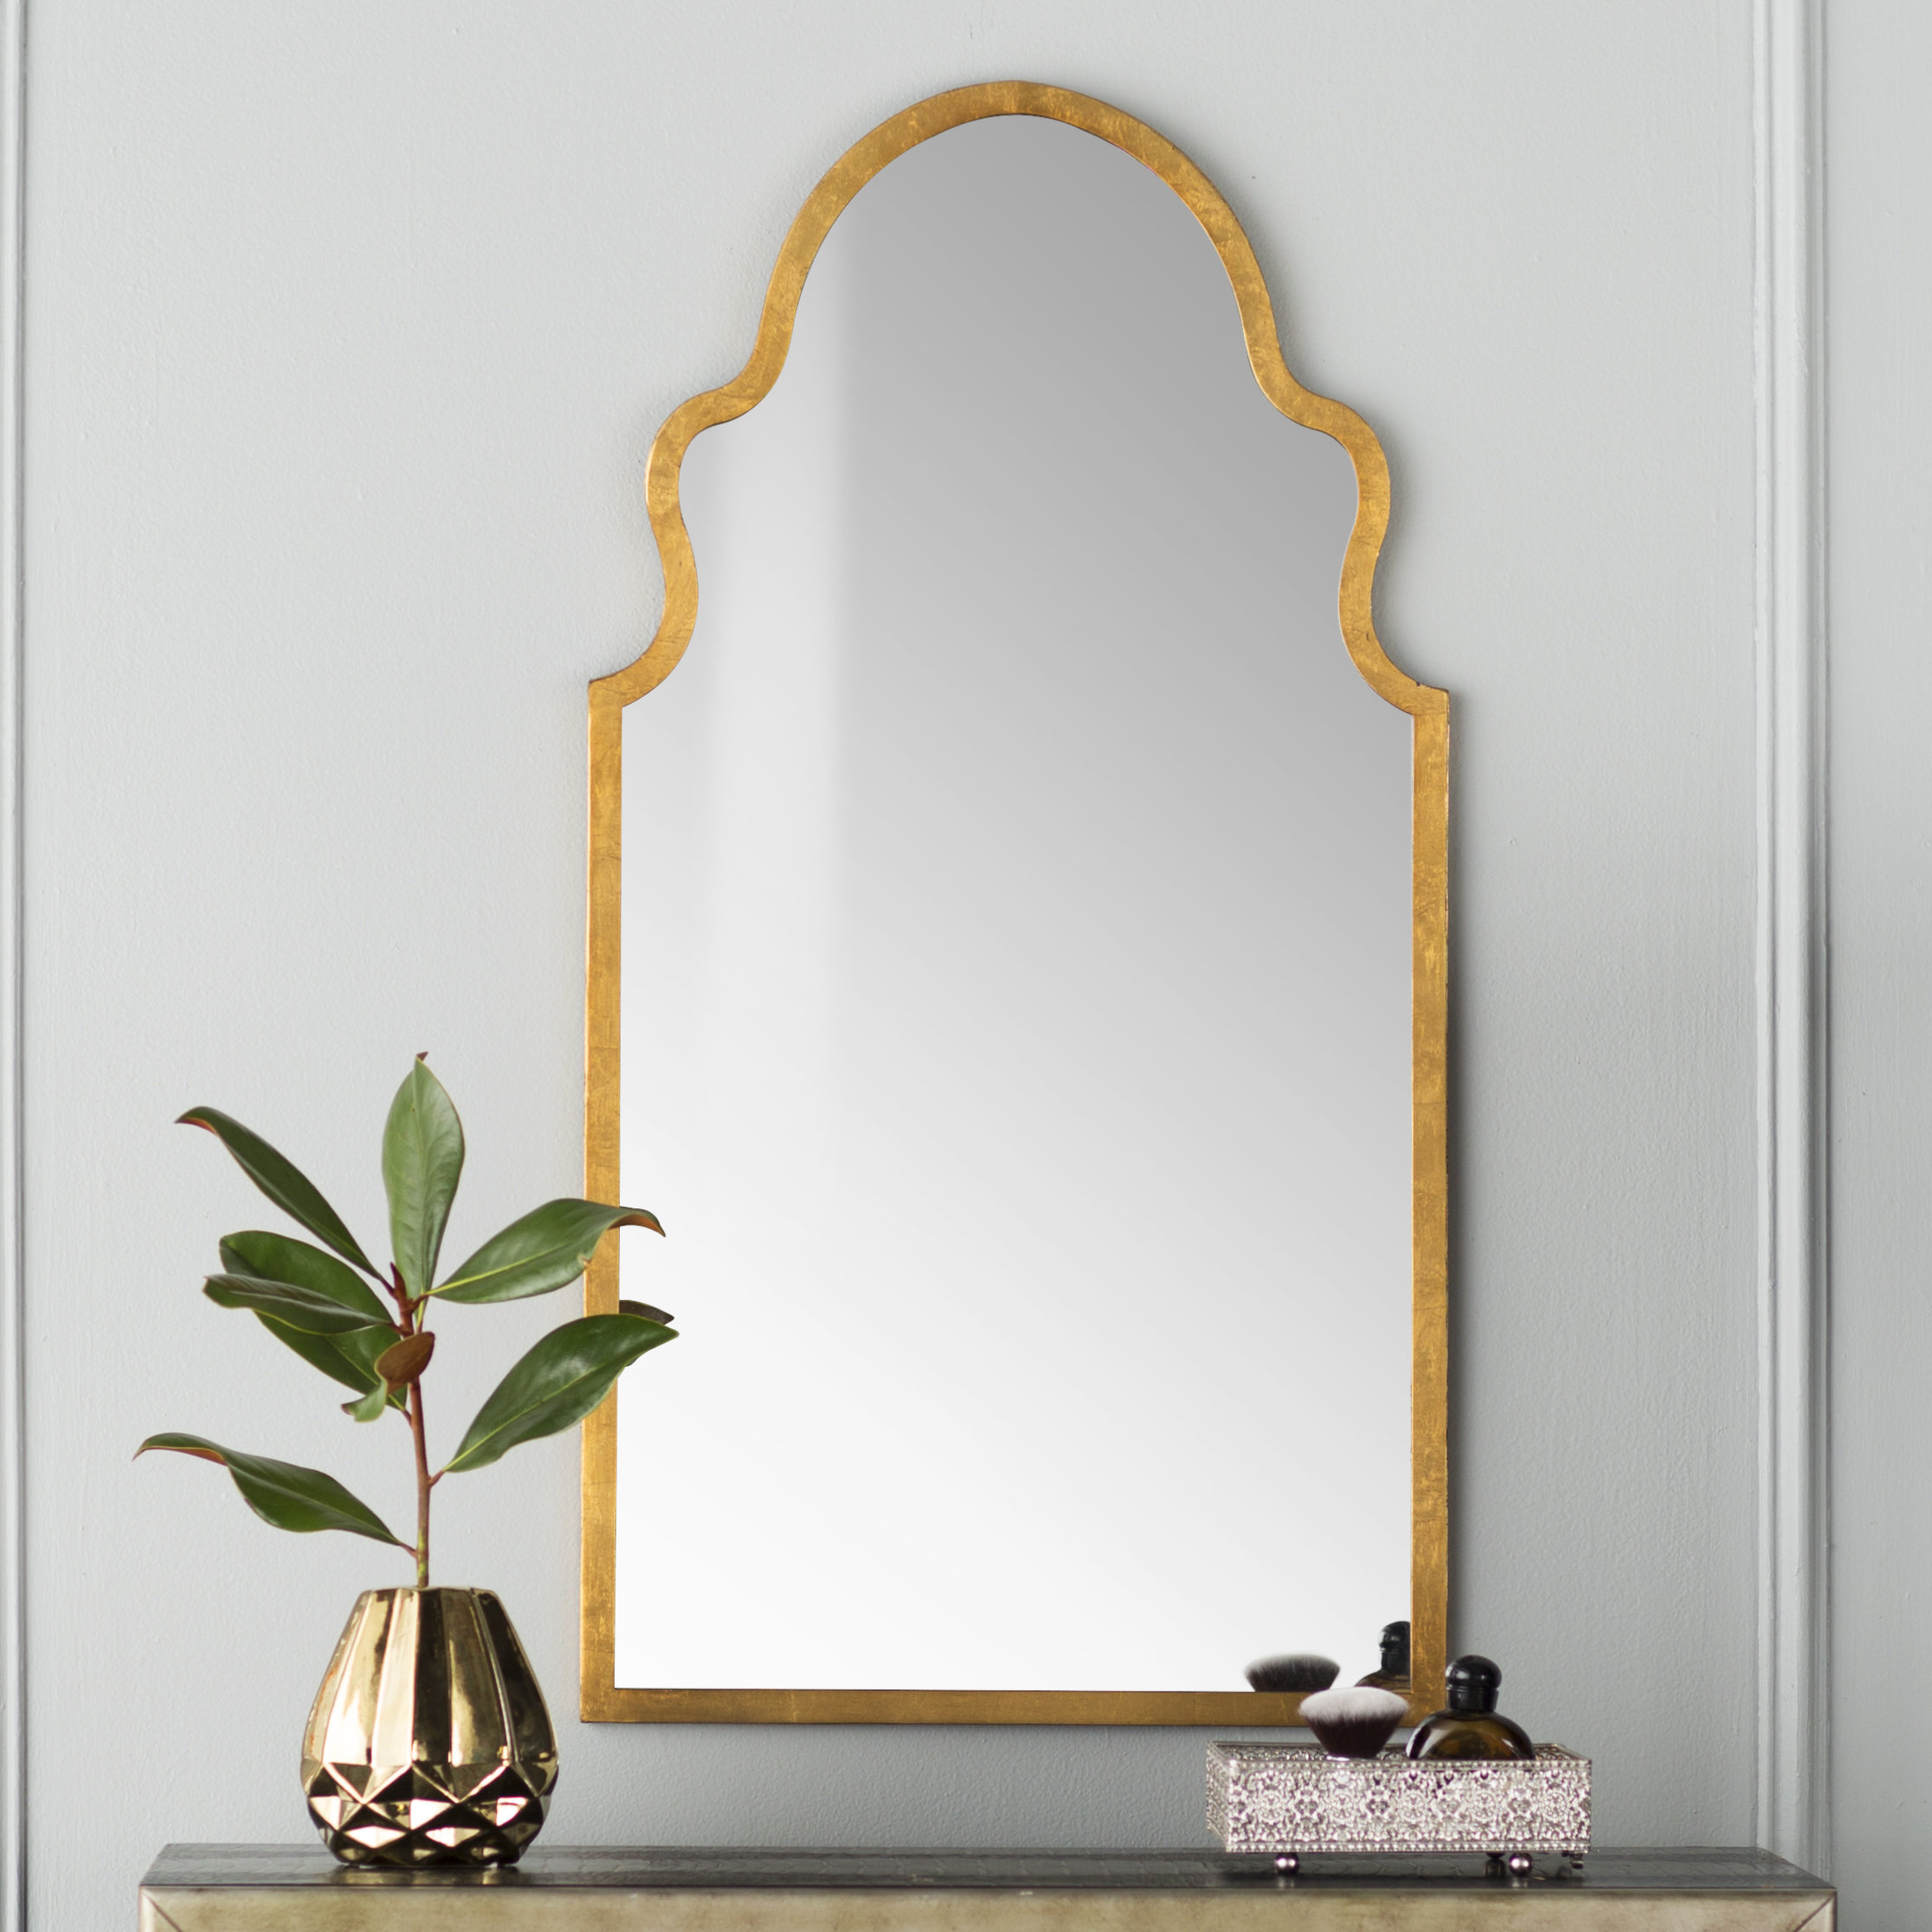 Menachem Modern & Contemporary Accent Mirror Throughout Astrid Modern & Contemporary Accent Mirrors (View 2 of 20)